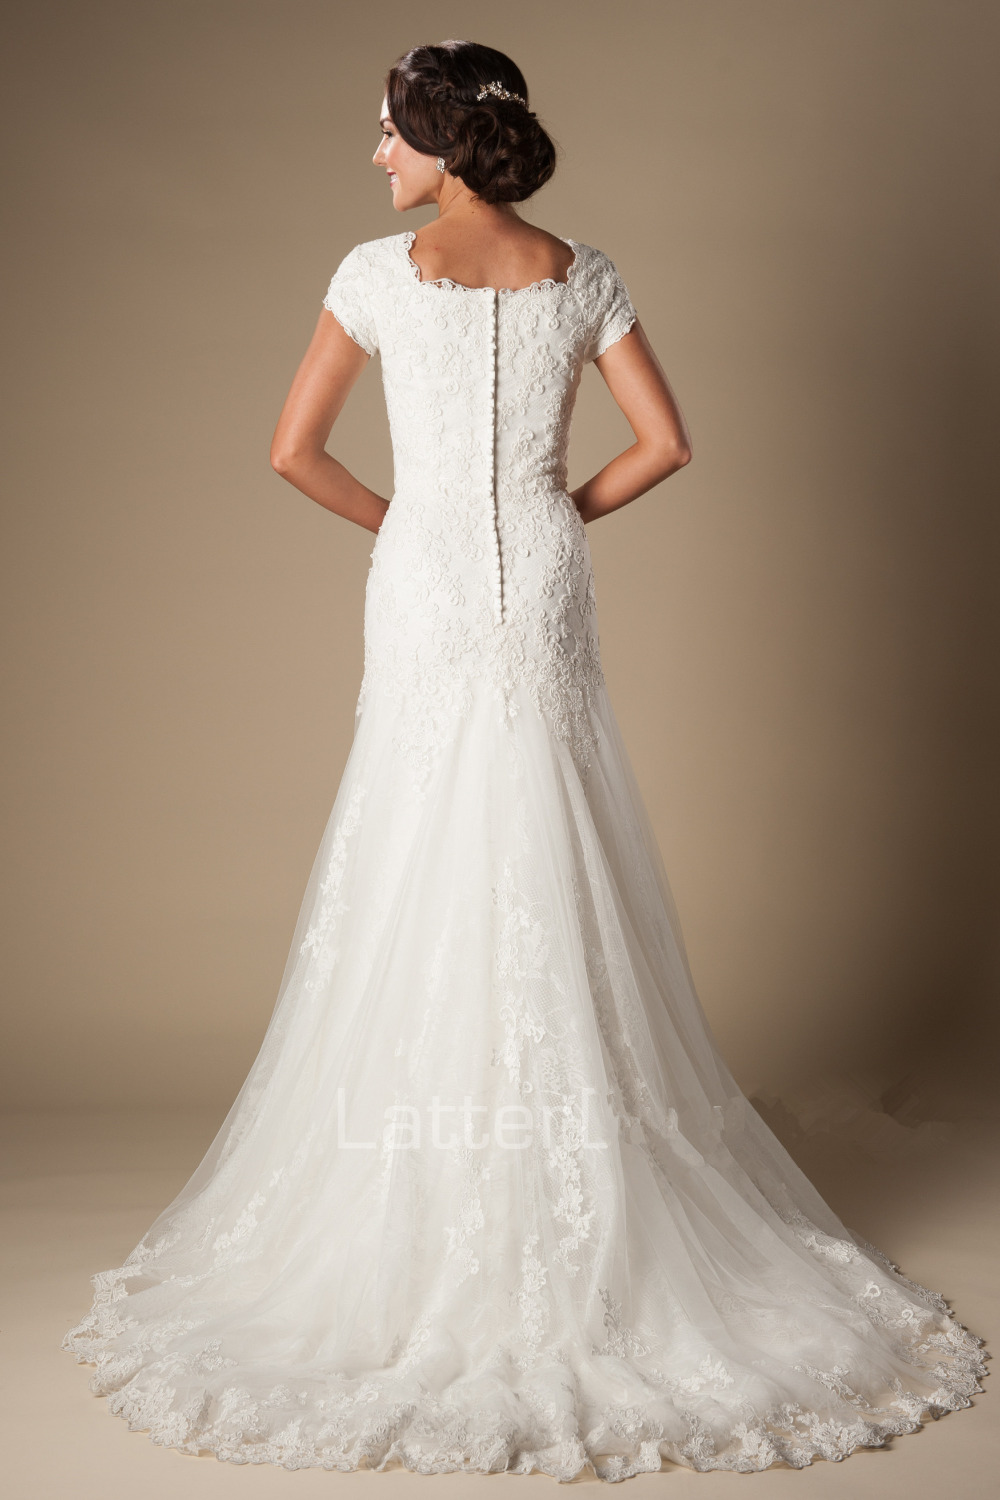 Wedding Dress 2016 Short Sleeve Vintage Lace Appliques Elegant Sheath Wedding